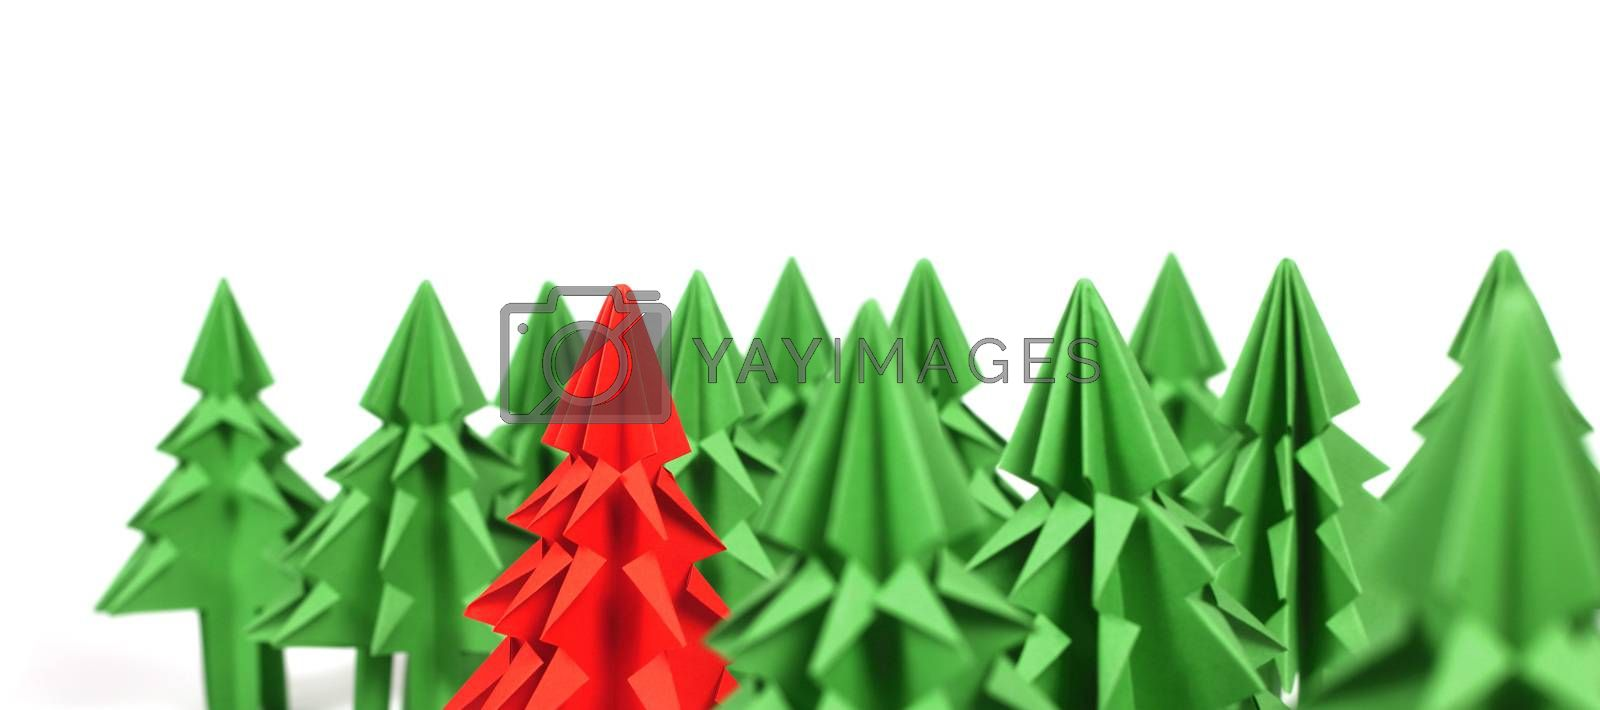 Origami Christmas trees of green craft paper isolated on white background